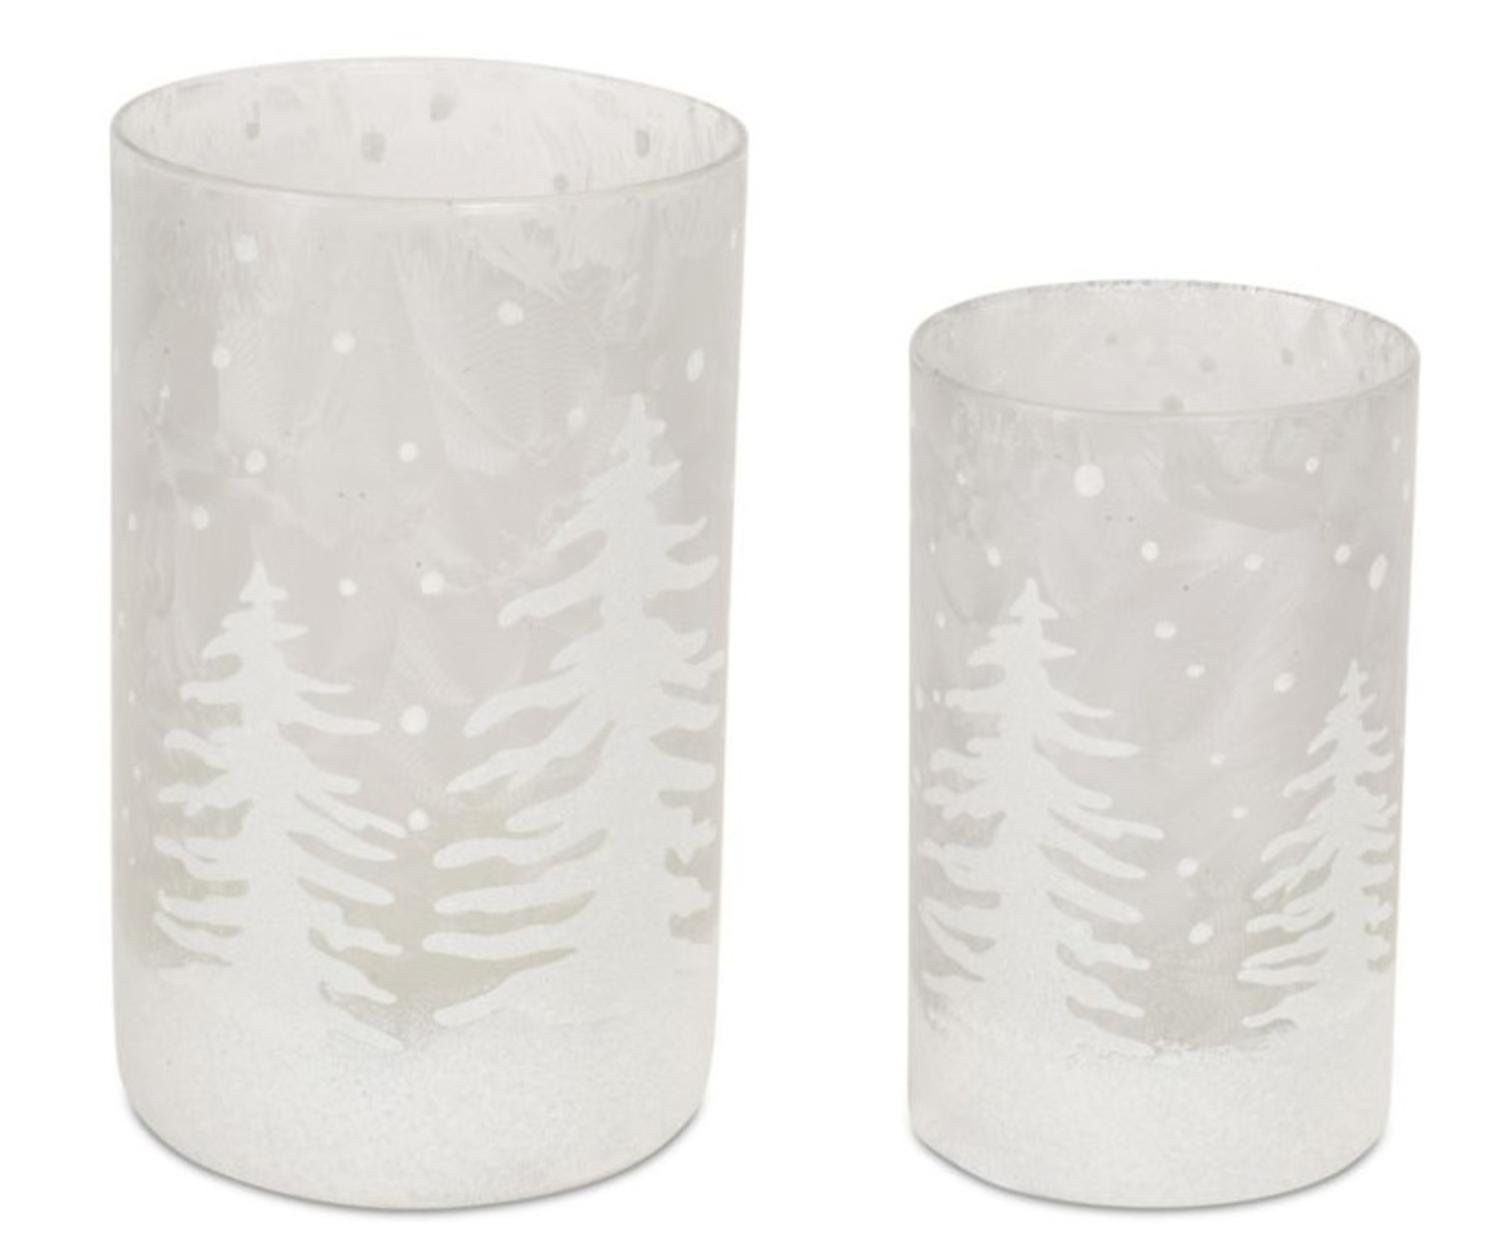 Pack of 4 Decorative Glass Frosted White and Silver Candle Holder